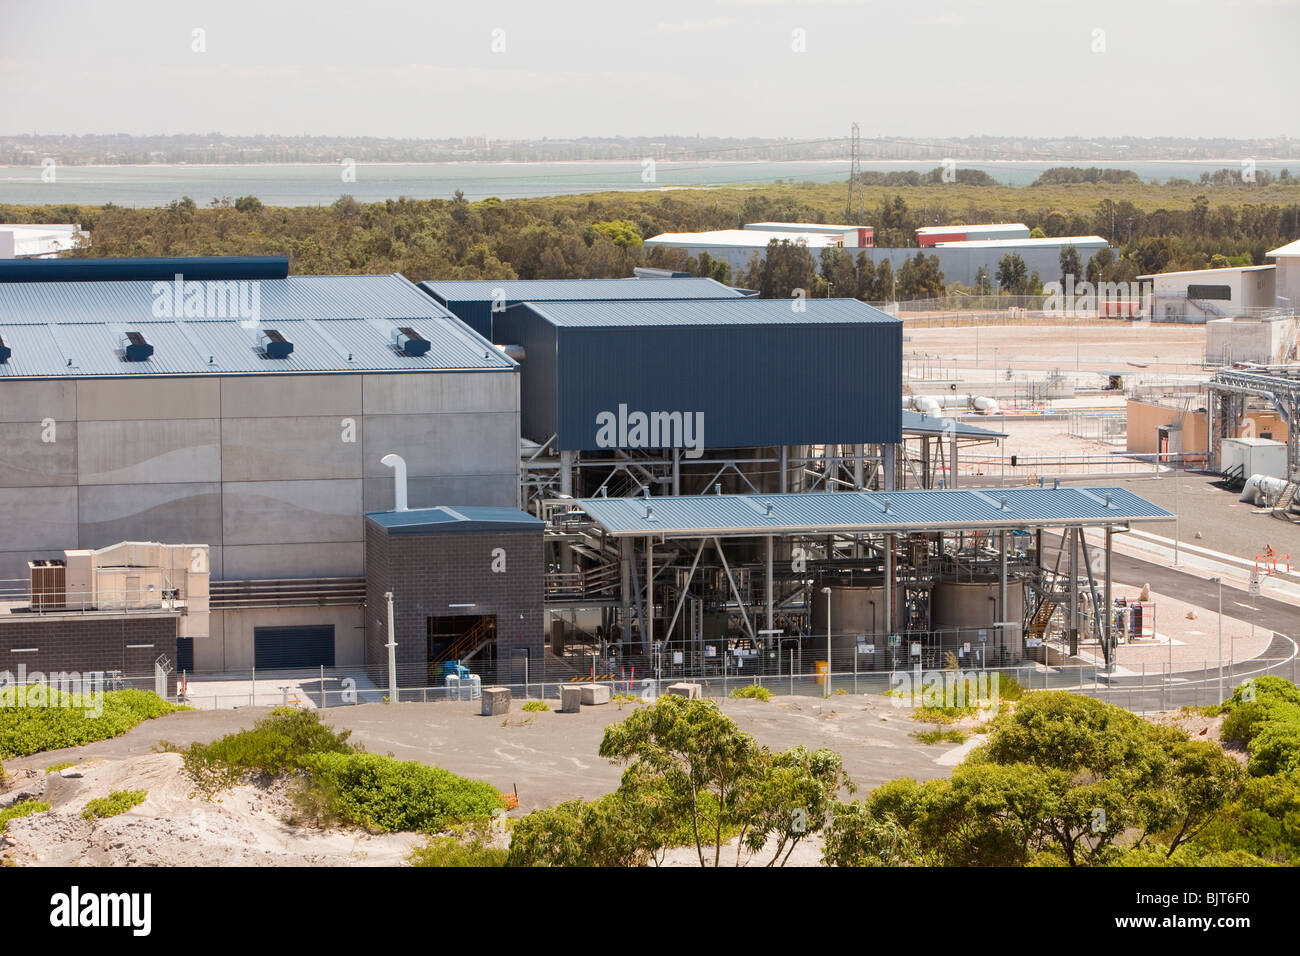 Buy Plants Sydney A New Multi Million Desalination Plant In Sydney